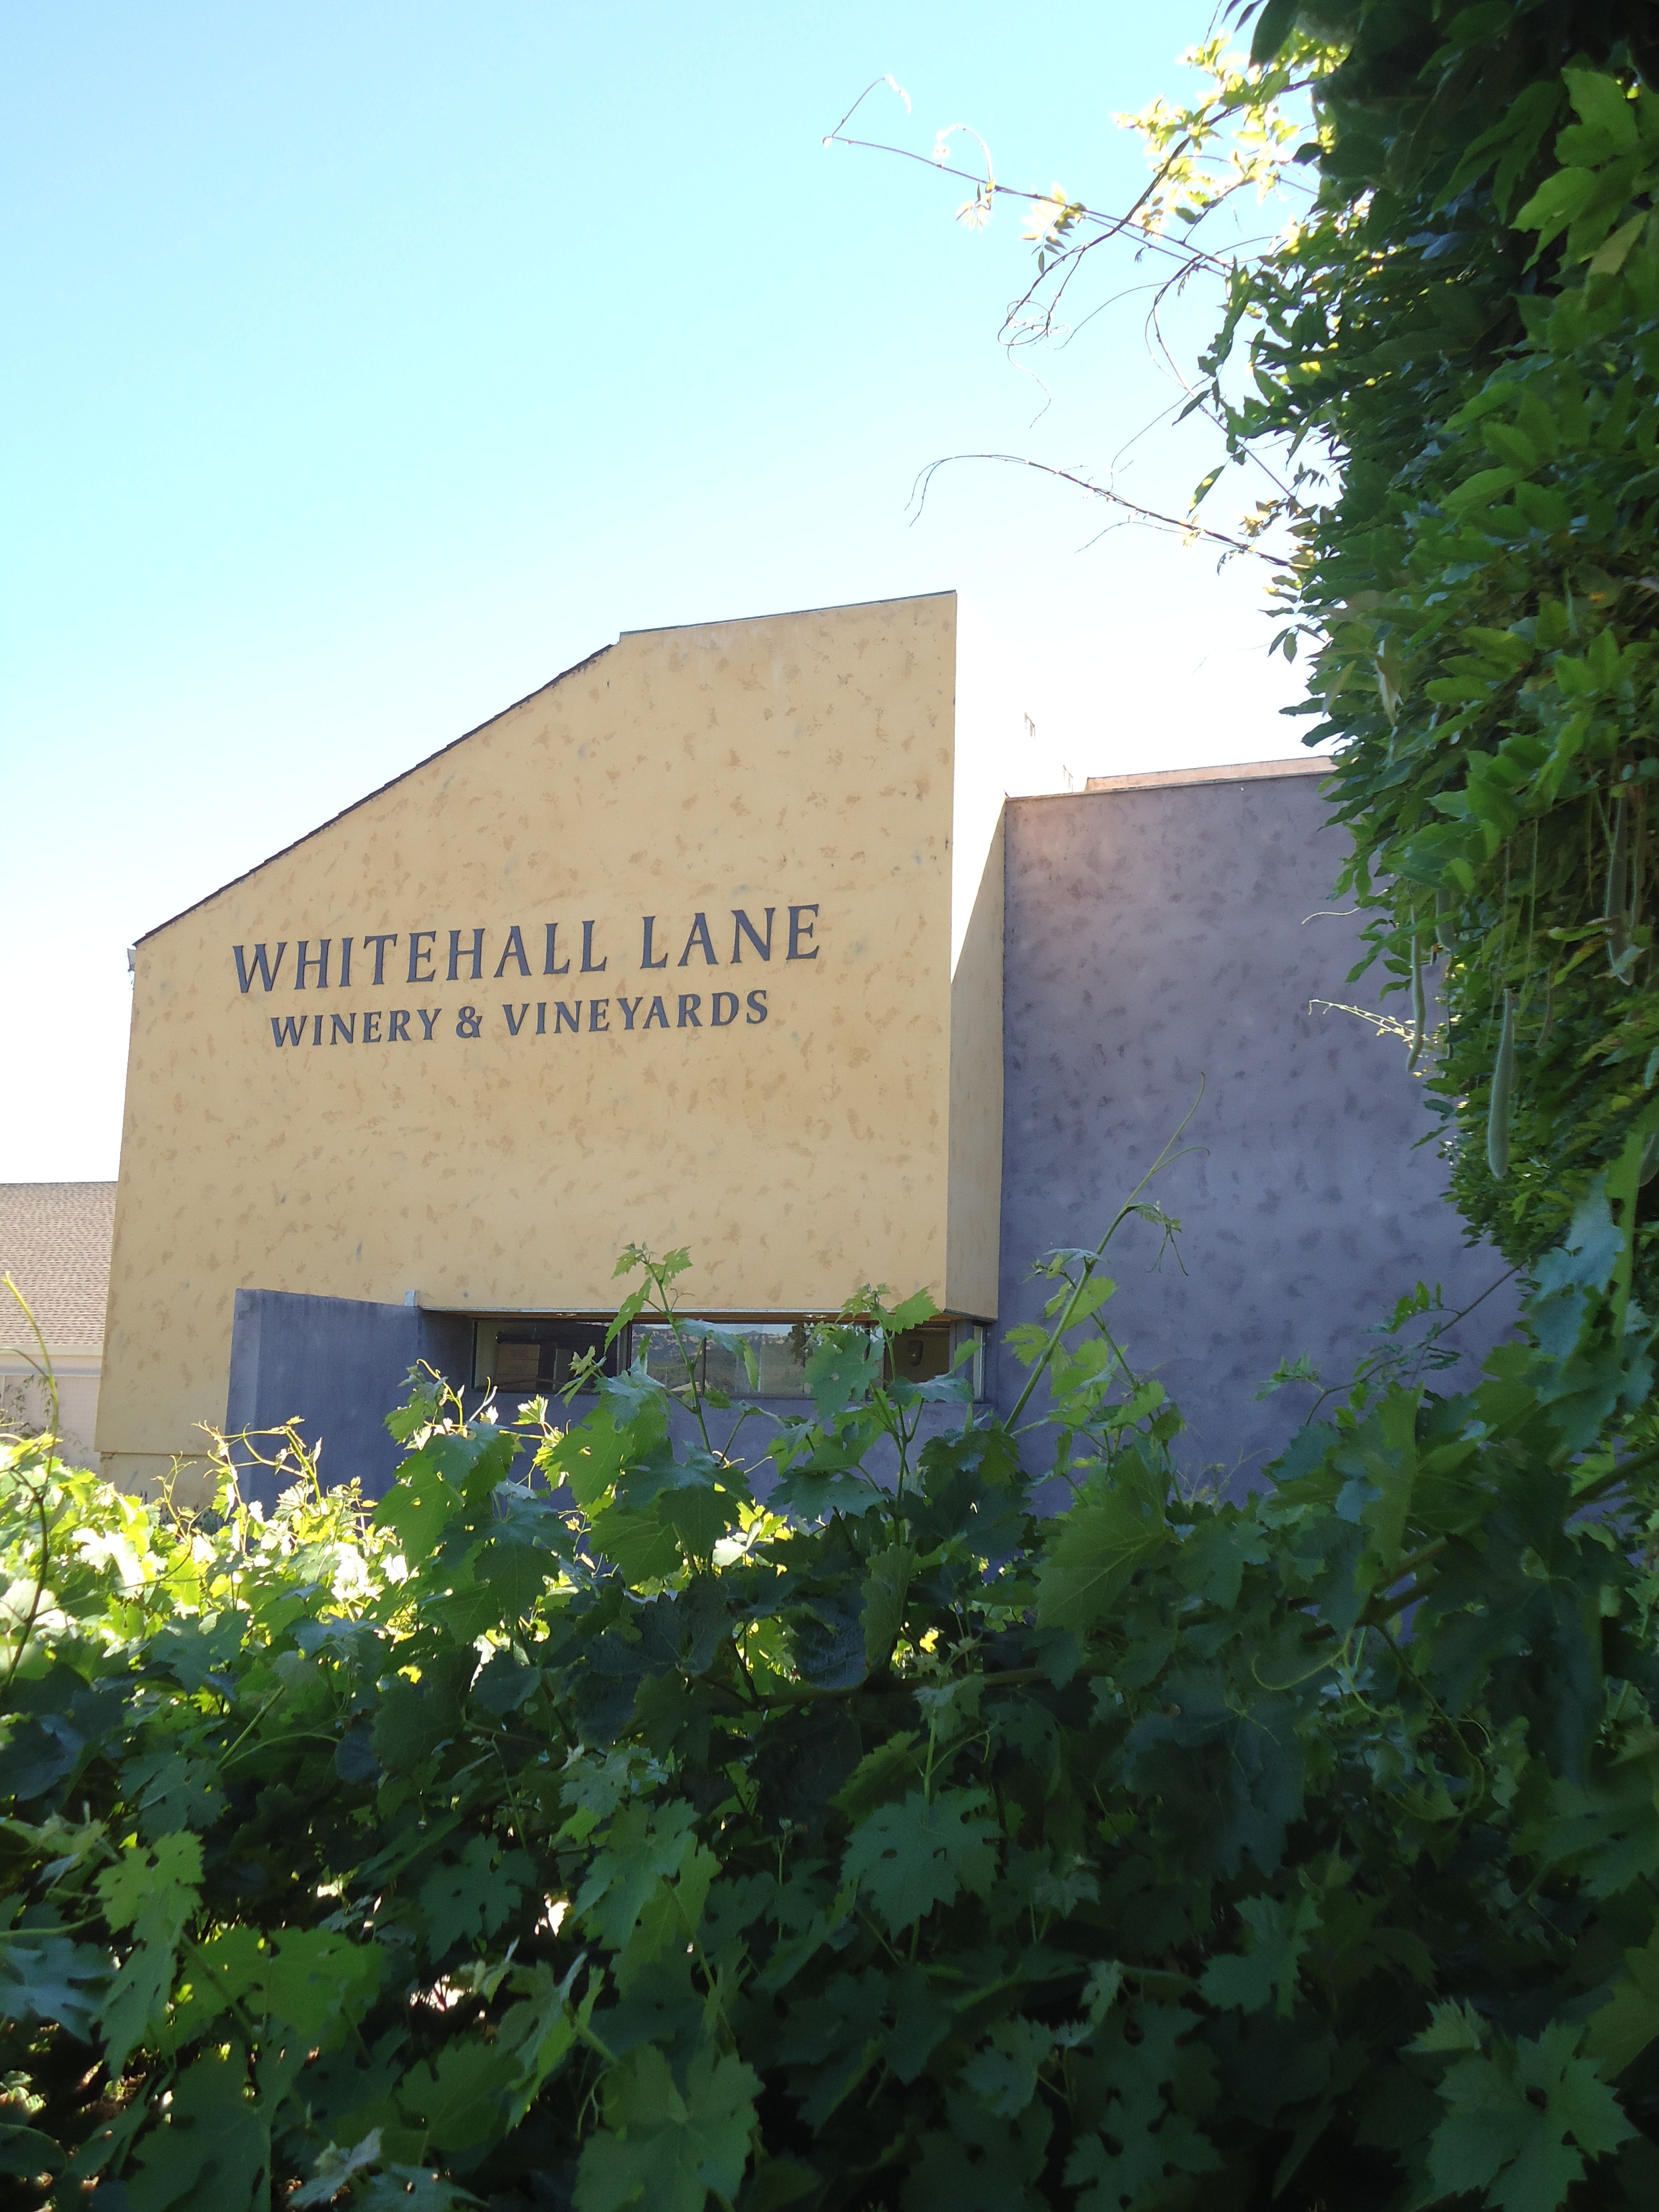 Whitehall Lane, Napa Valley